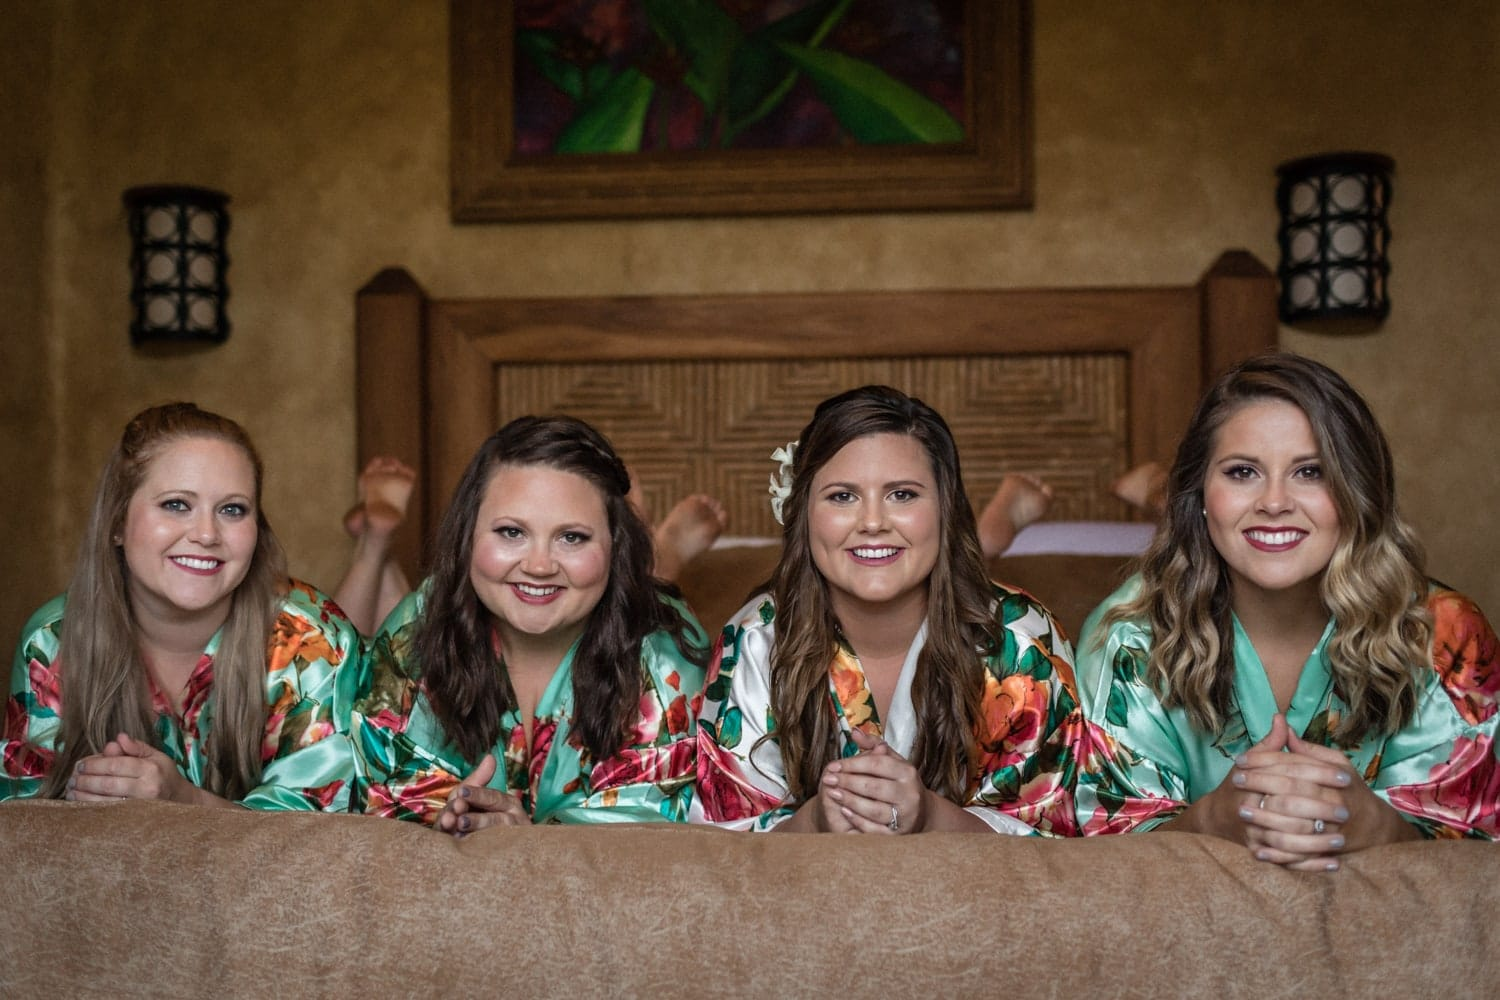 Bride and bridesmaids smiling on bed while preparing for wedding.